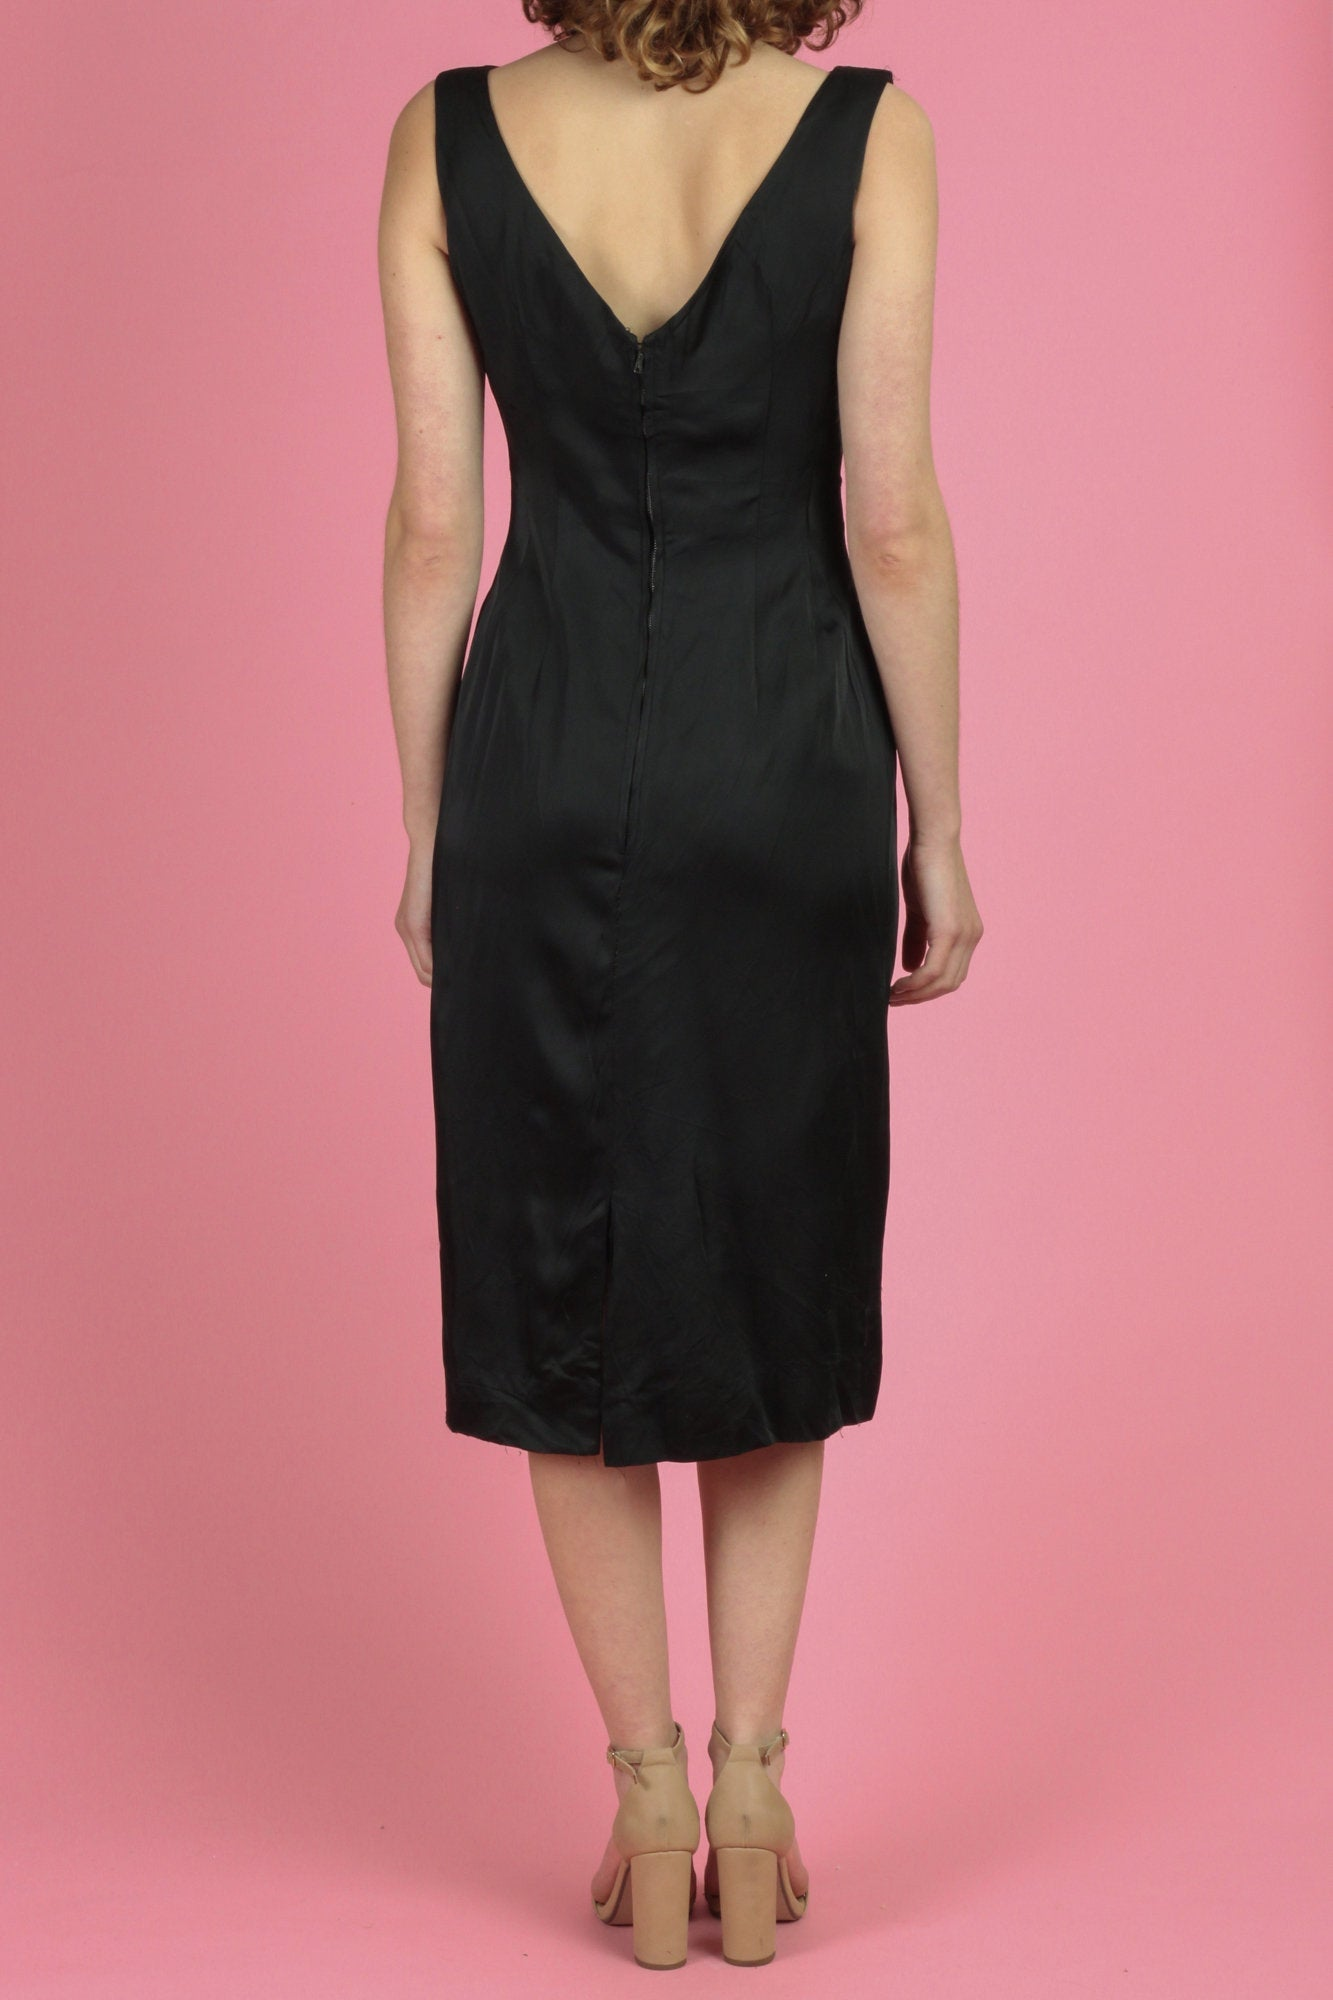 Vintage 1950s Black Satin Wiggle Dress - Medium